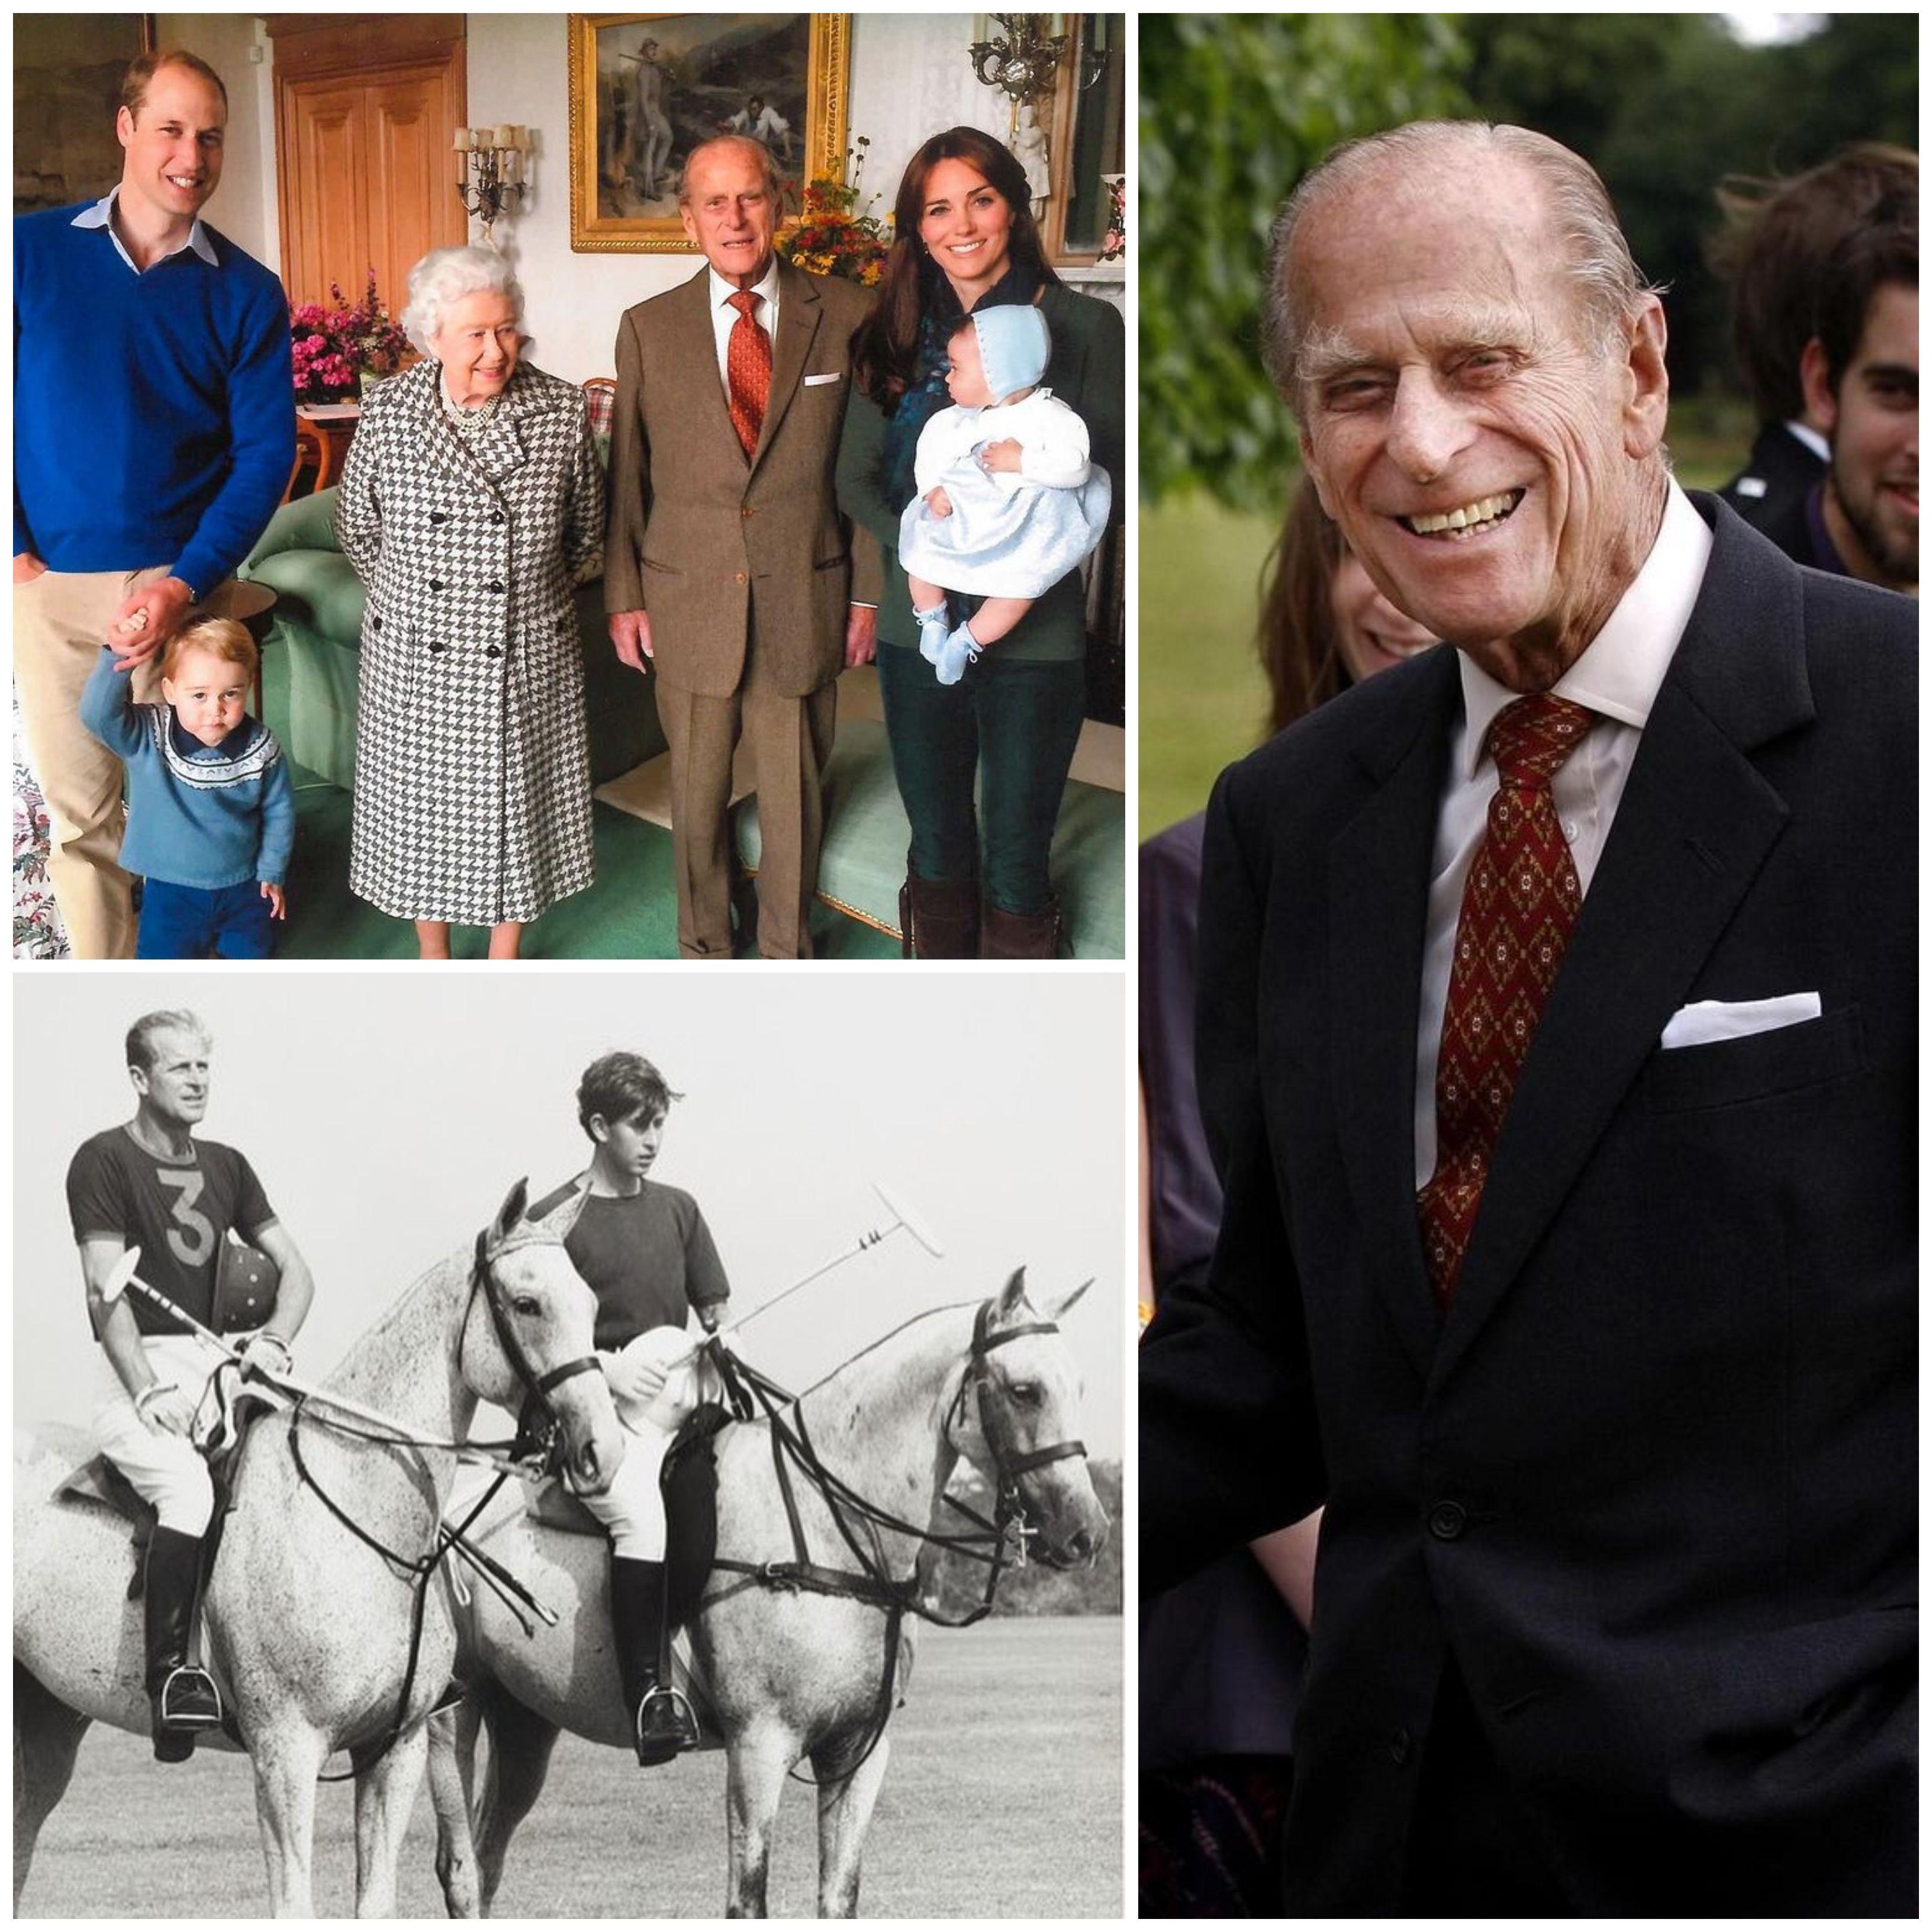 Photos of Prince Philip released by The Windsors